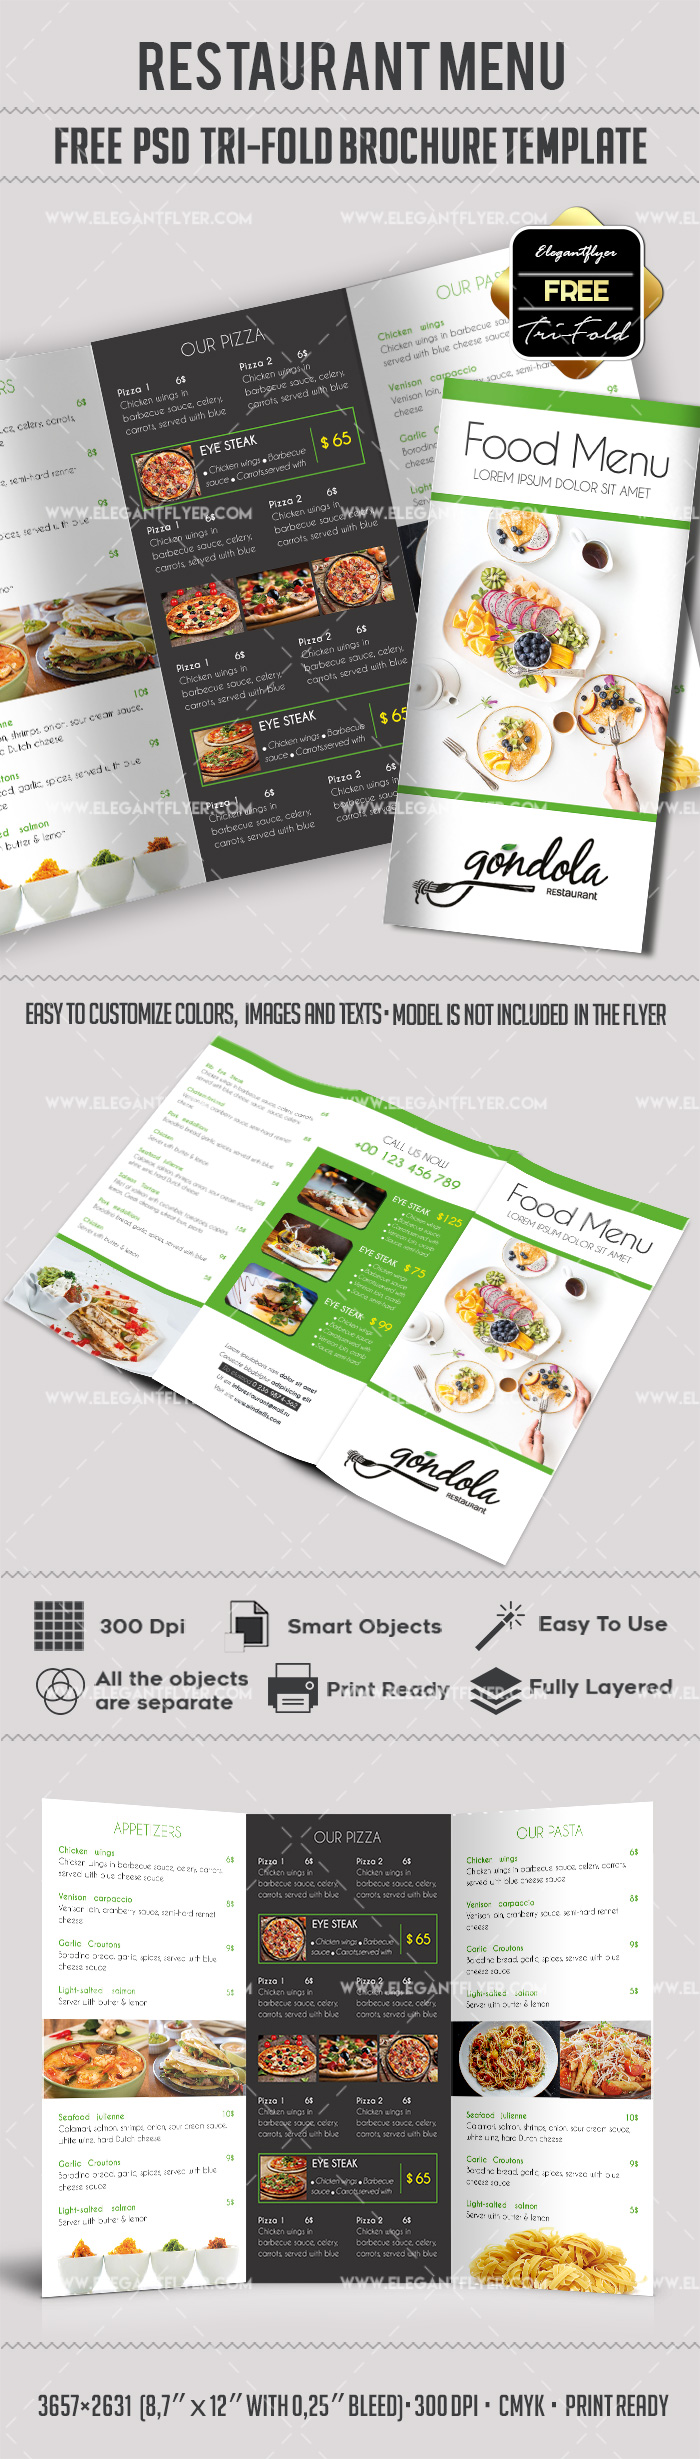 Free food menu restaurant brochure template in psd by for Free food brochure templates